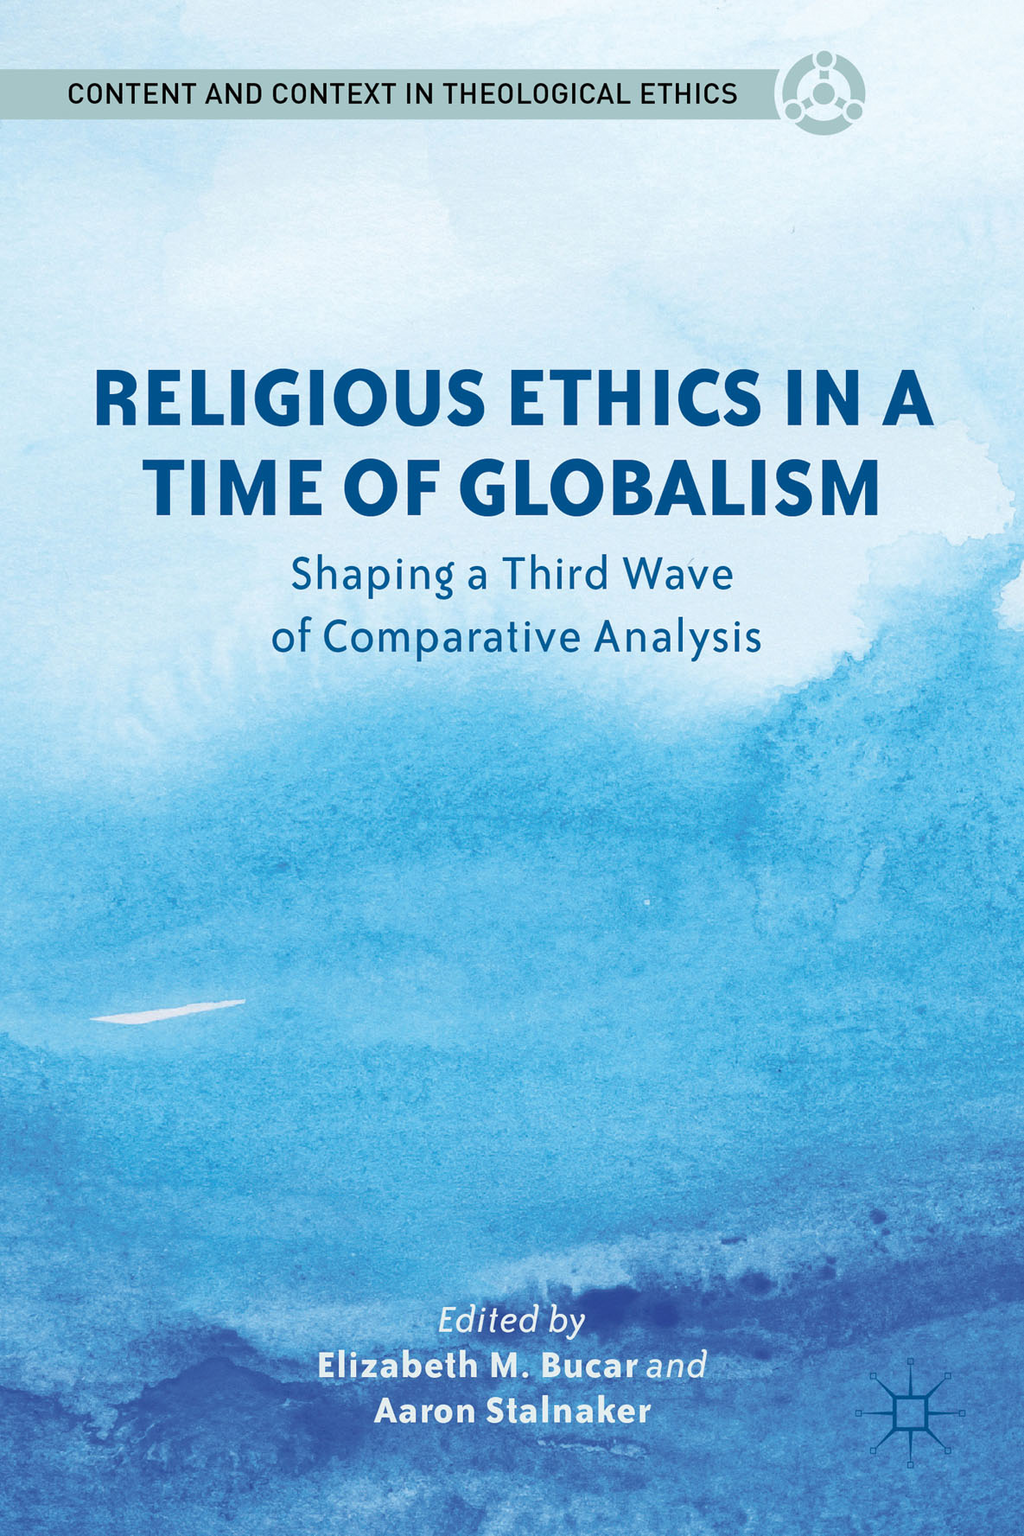 Religious Ethics in a Time of Globalism Shaping a Third Wave of Comparative Analysis